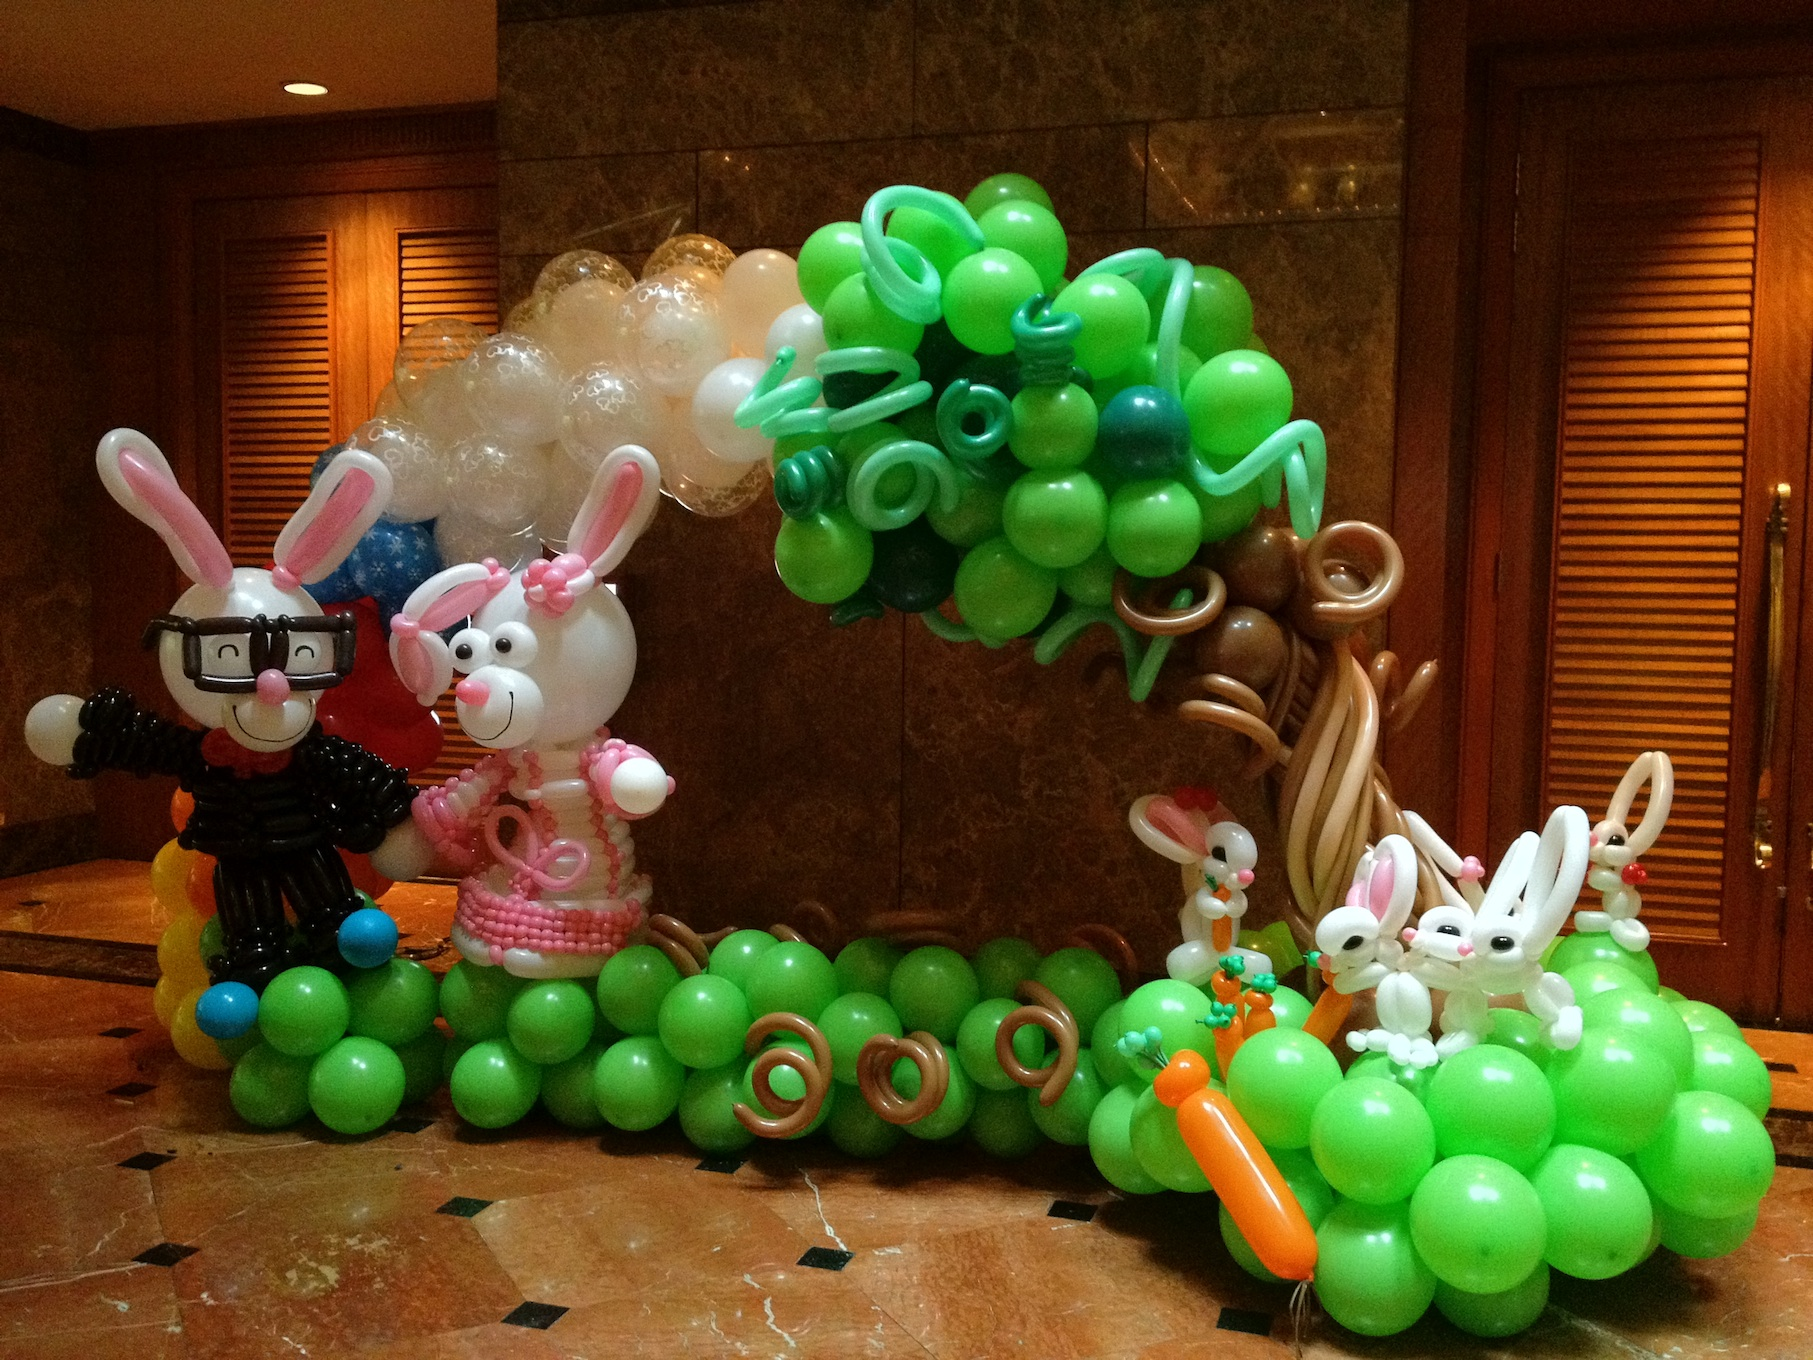 Balloon decorations for wedding that balloons for Ballon decoration